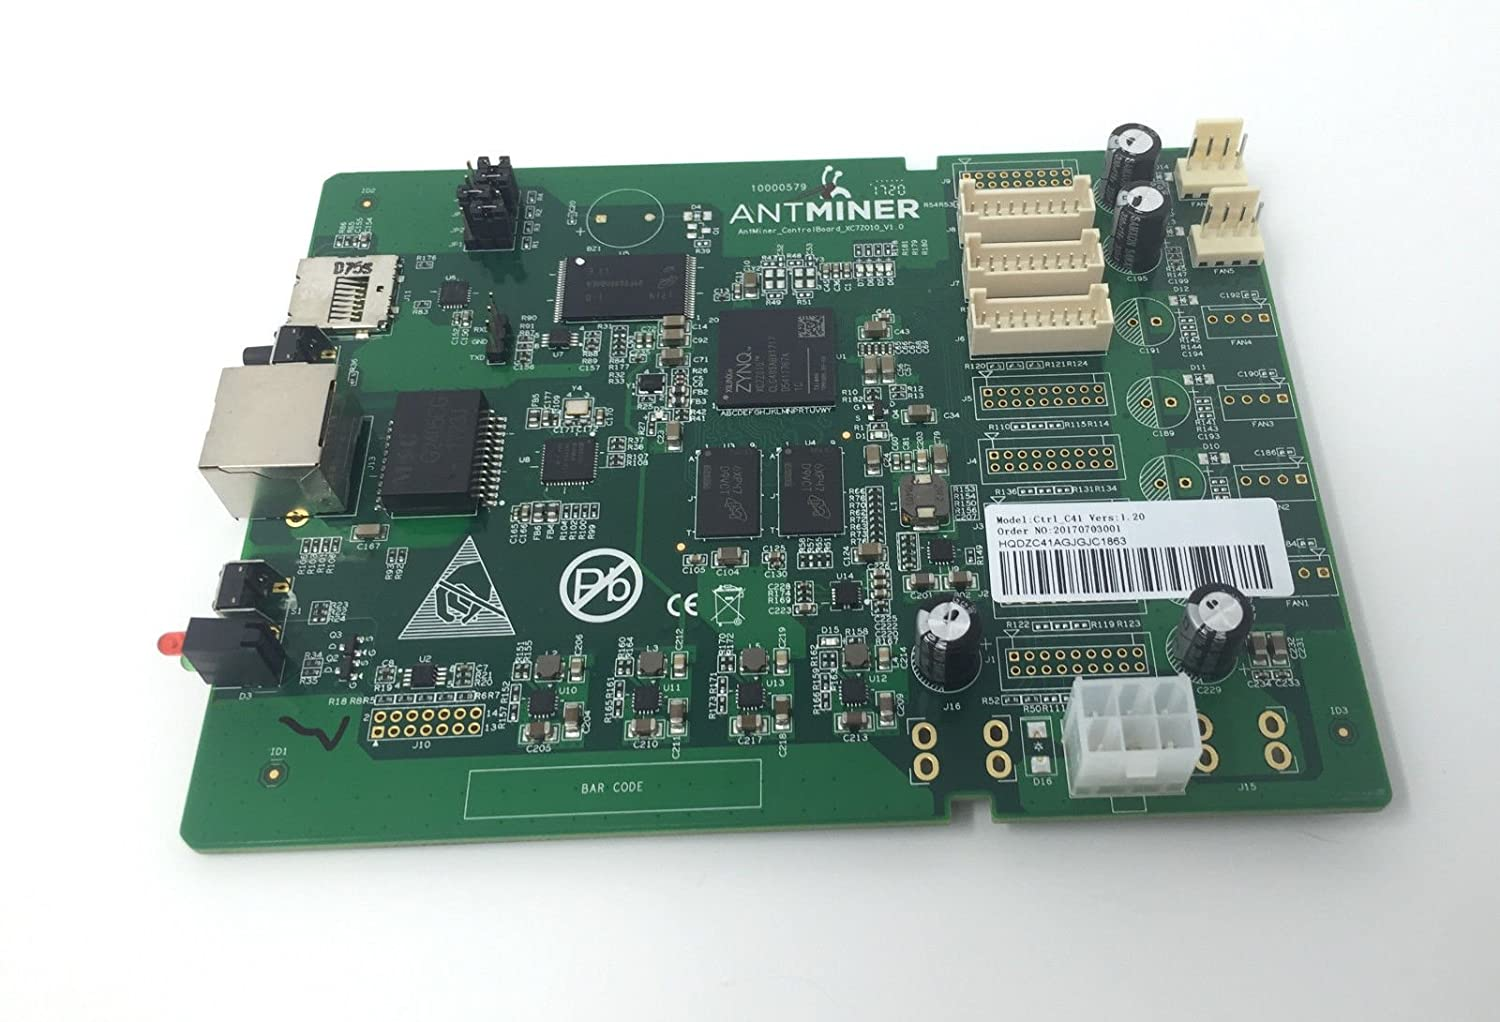 BITMAIN Antminer S9 Data Circuit Board (for any batch)